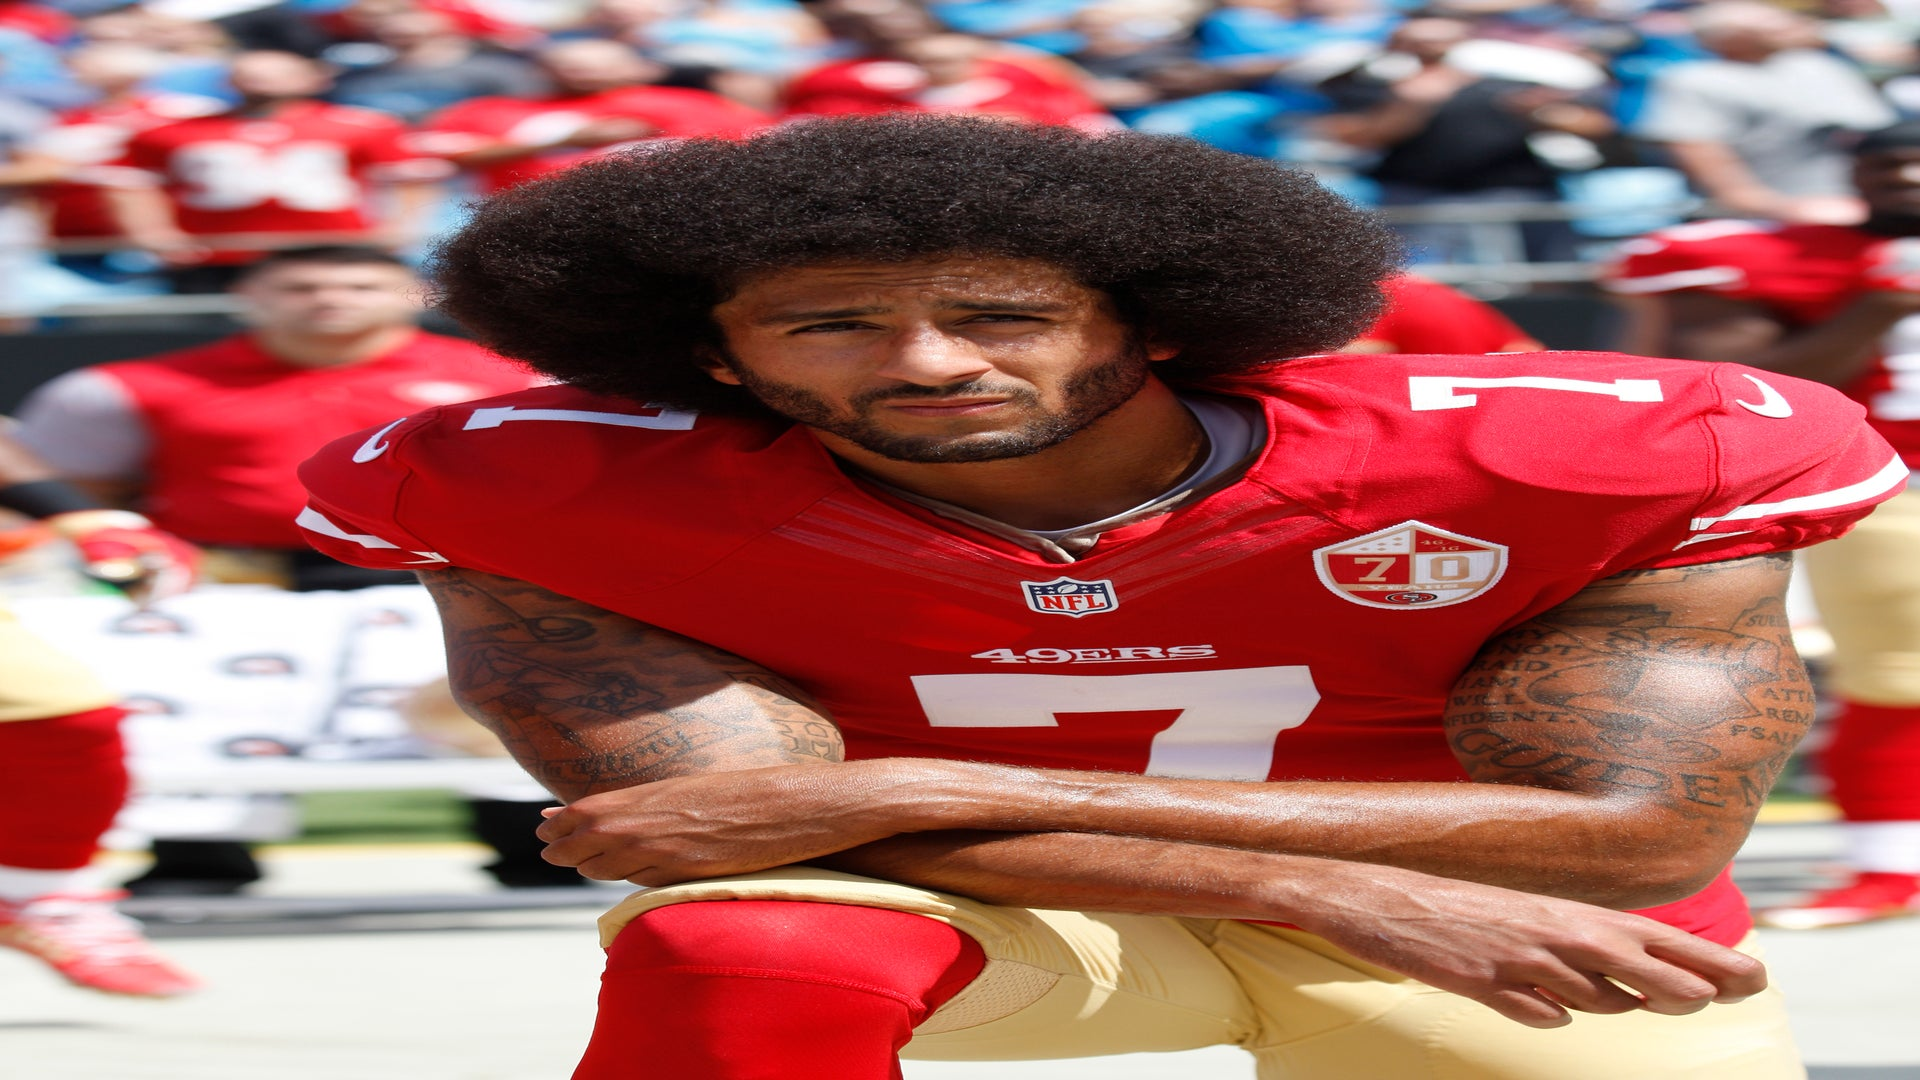 Colin Kaepernick Donated $50k To Meals On Wheels And Fighting for Somalia